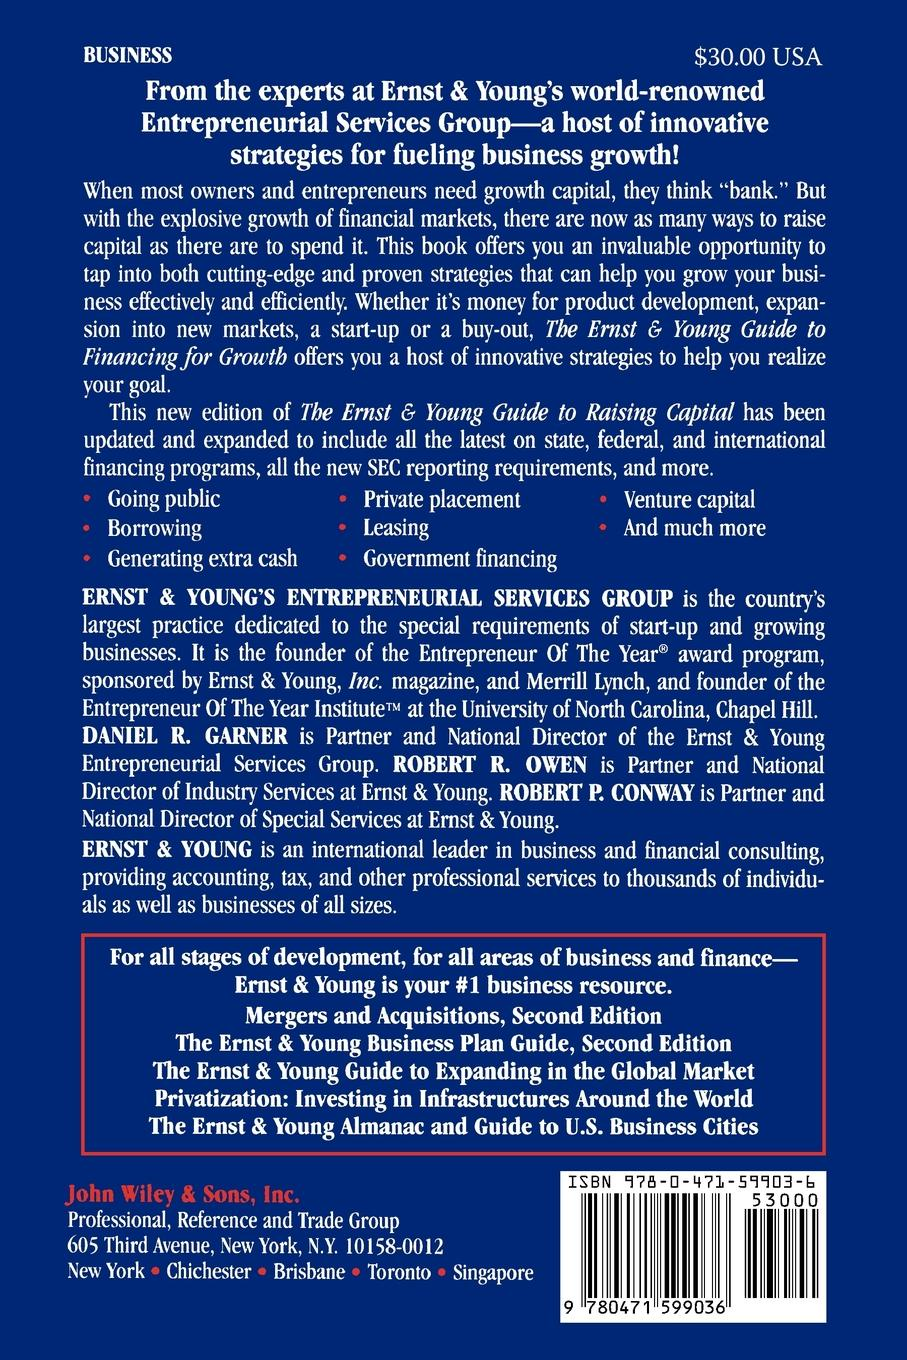 Daniel R. Garner, Robert P. Conway, Owen The Ernst & Young Guide to Financing for Growth